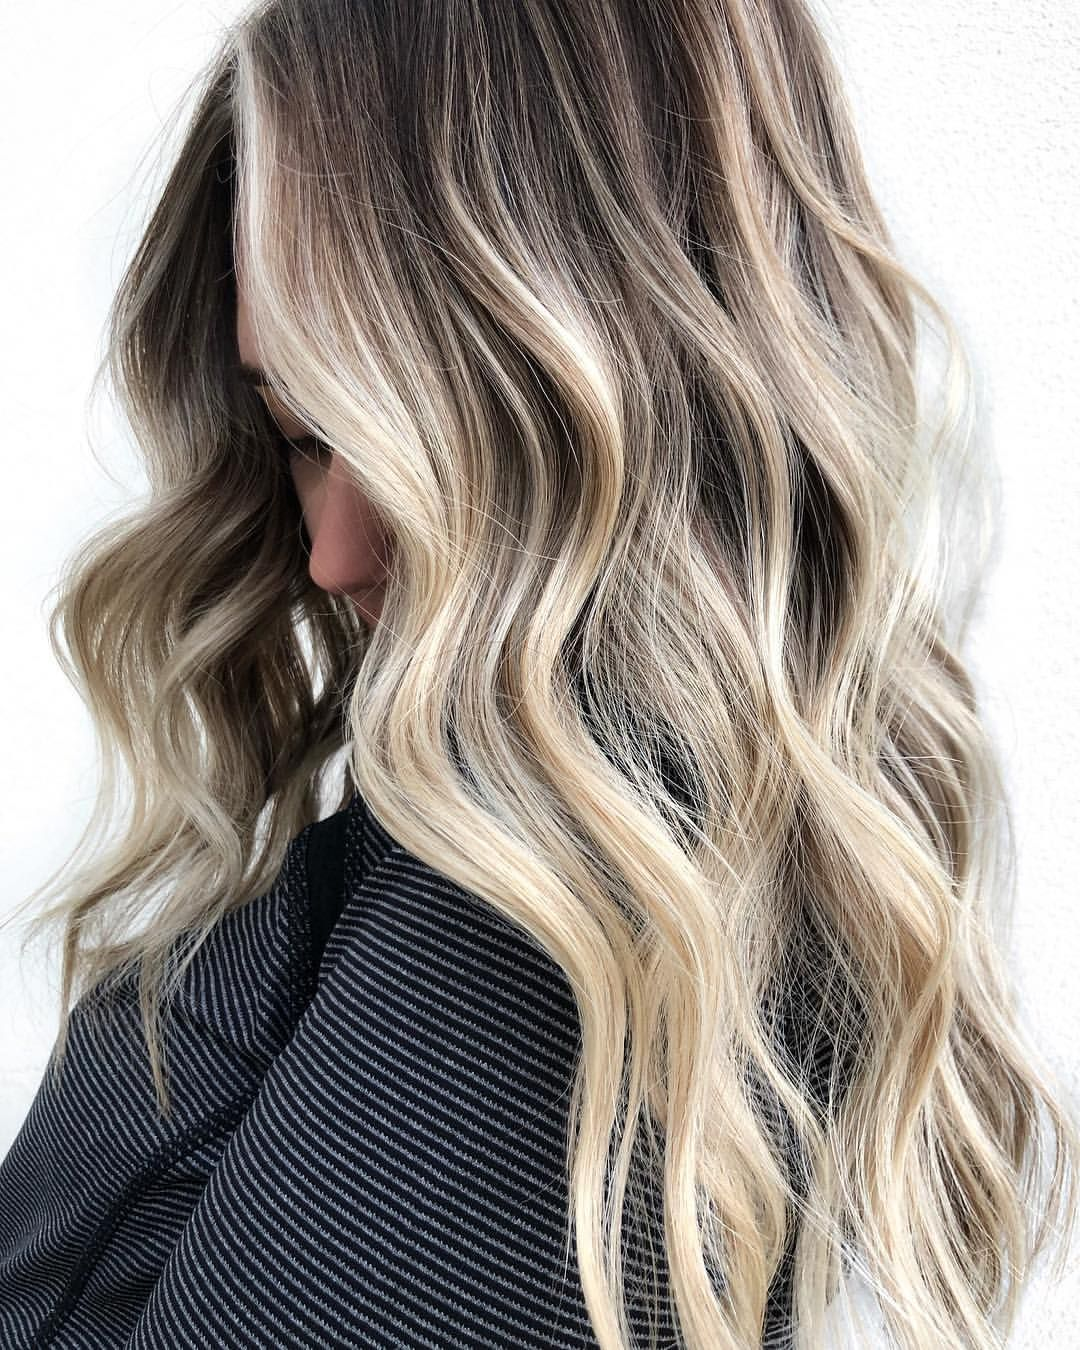 Ct Hair Artist On Instagram Light Depth Who Wants To Learn This Technique Like Most Of Us Two Artistic Hair Hair Photography Hair Color Highlights